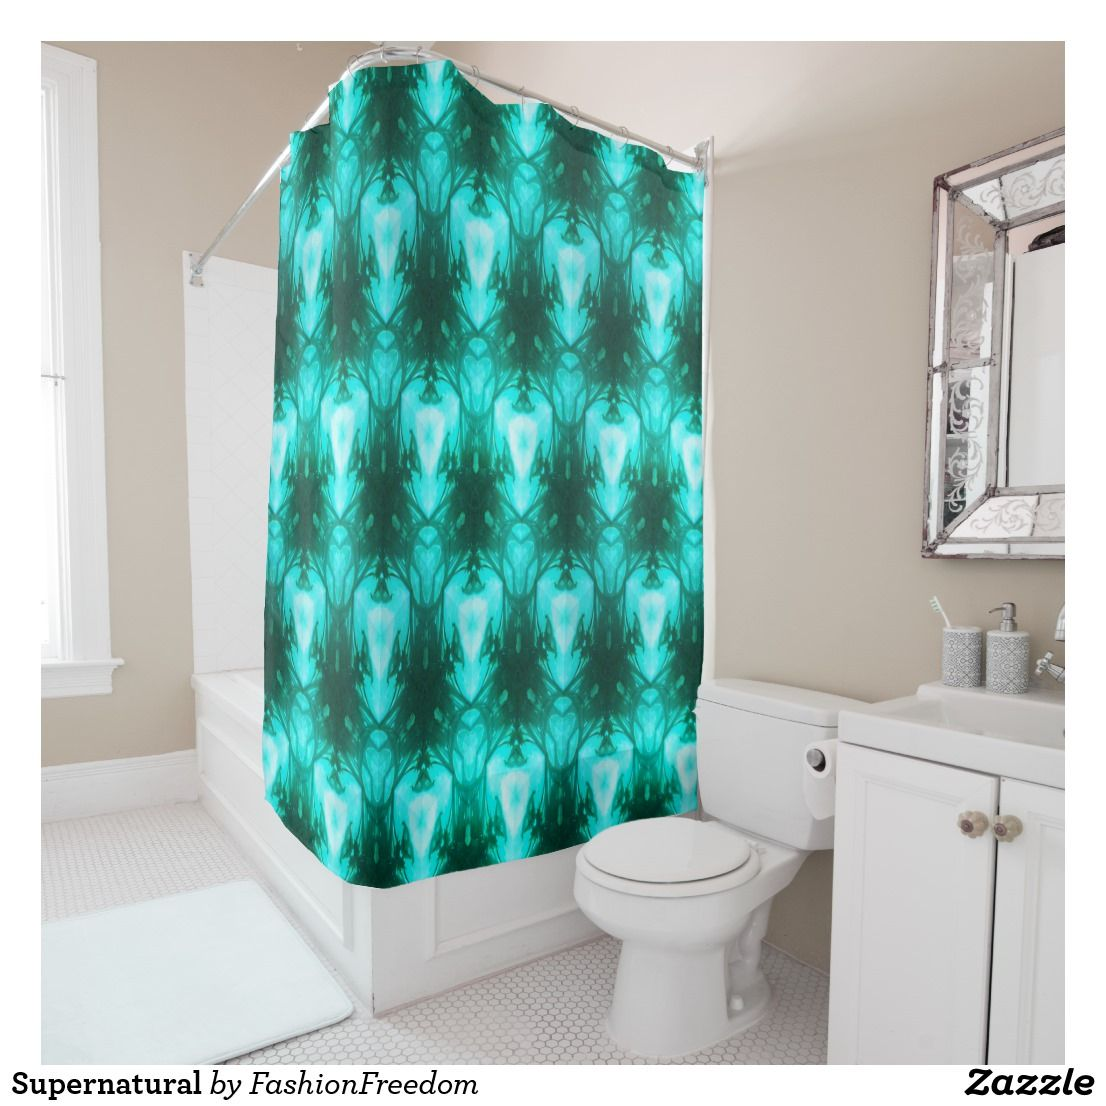 Supernatural Shower Curtain Zazzle Com With Images Rainbow